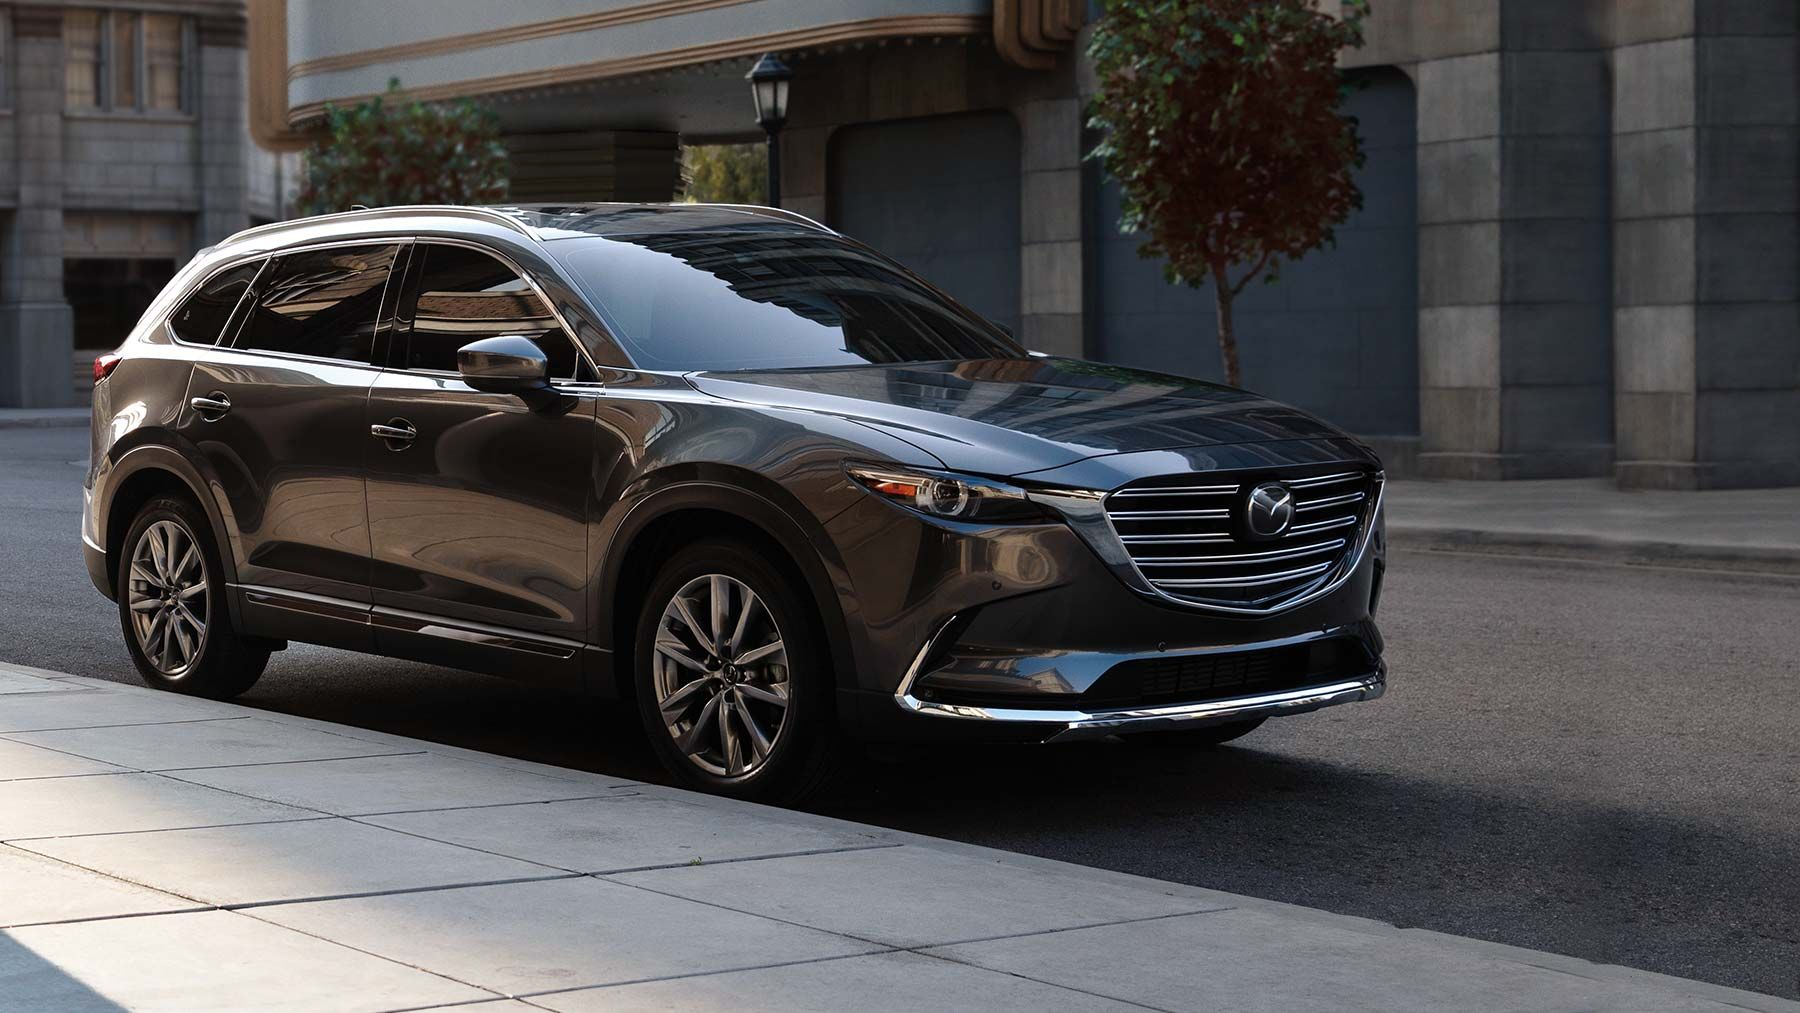 View Photos And Videos Of The 2019 Mazda Cx 9 Crossover See Exterior And Interior Shots Explore Available Accessories And See The Car In Mazda Cx 9 Mazda Suv